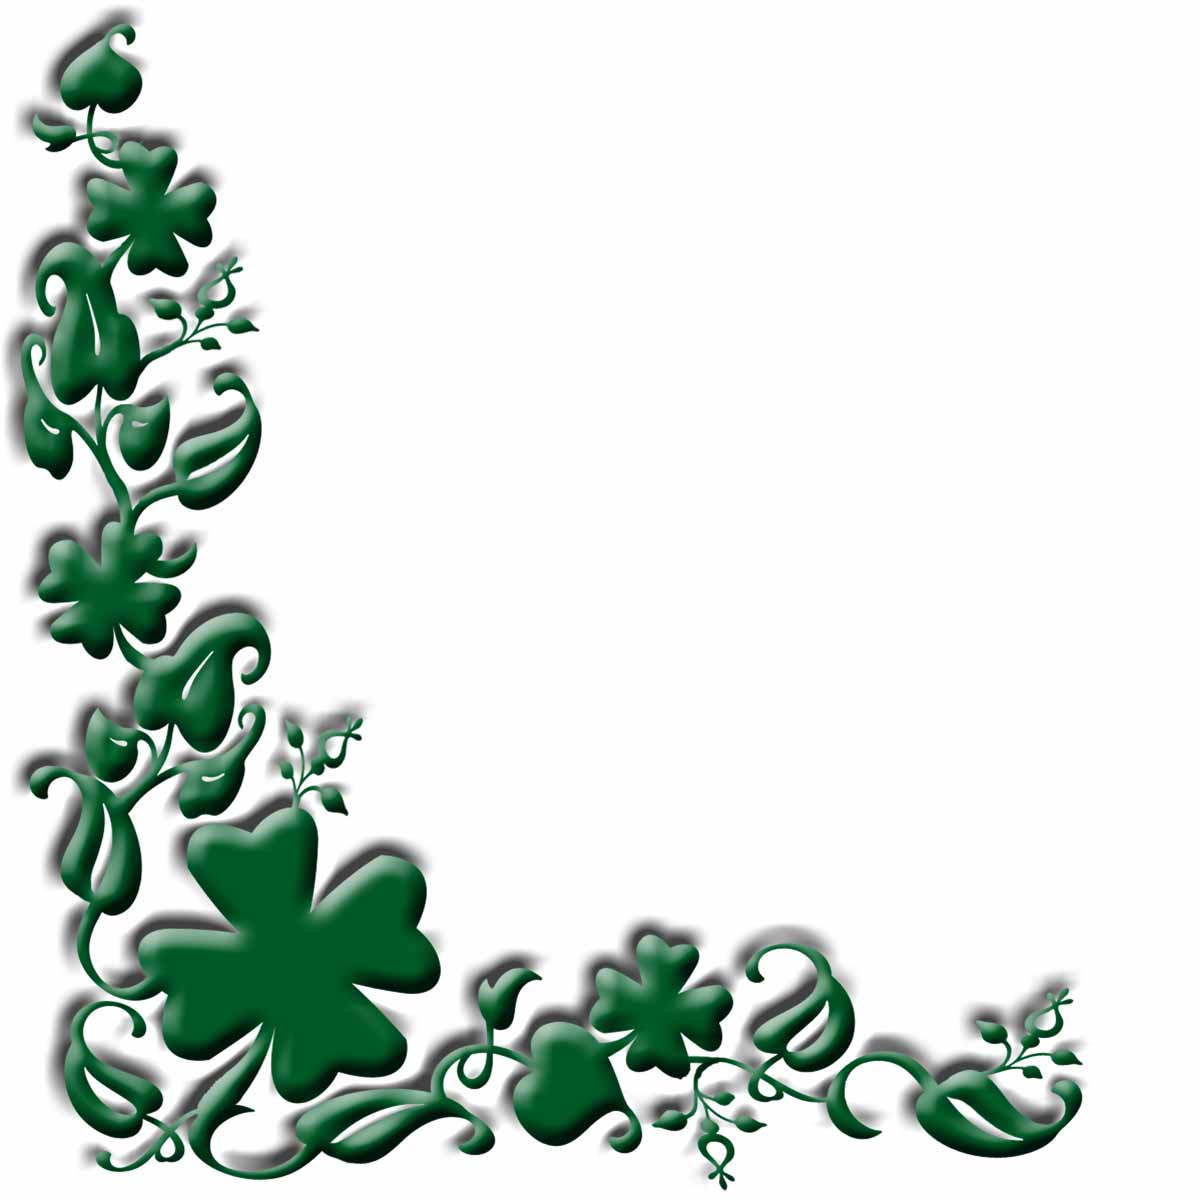 Shamrock frame clipart p clip black and white library Free Irish Cliparts, Download Free Clip Art, Free Clip Art on ... clip black and white library